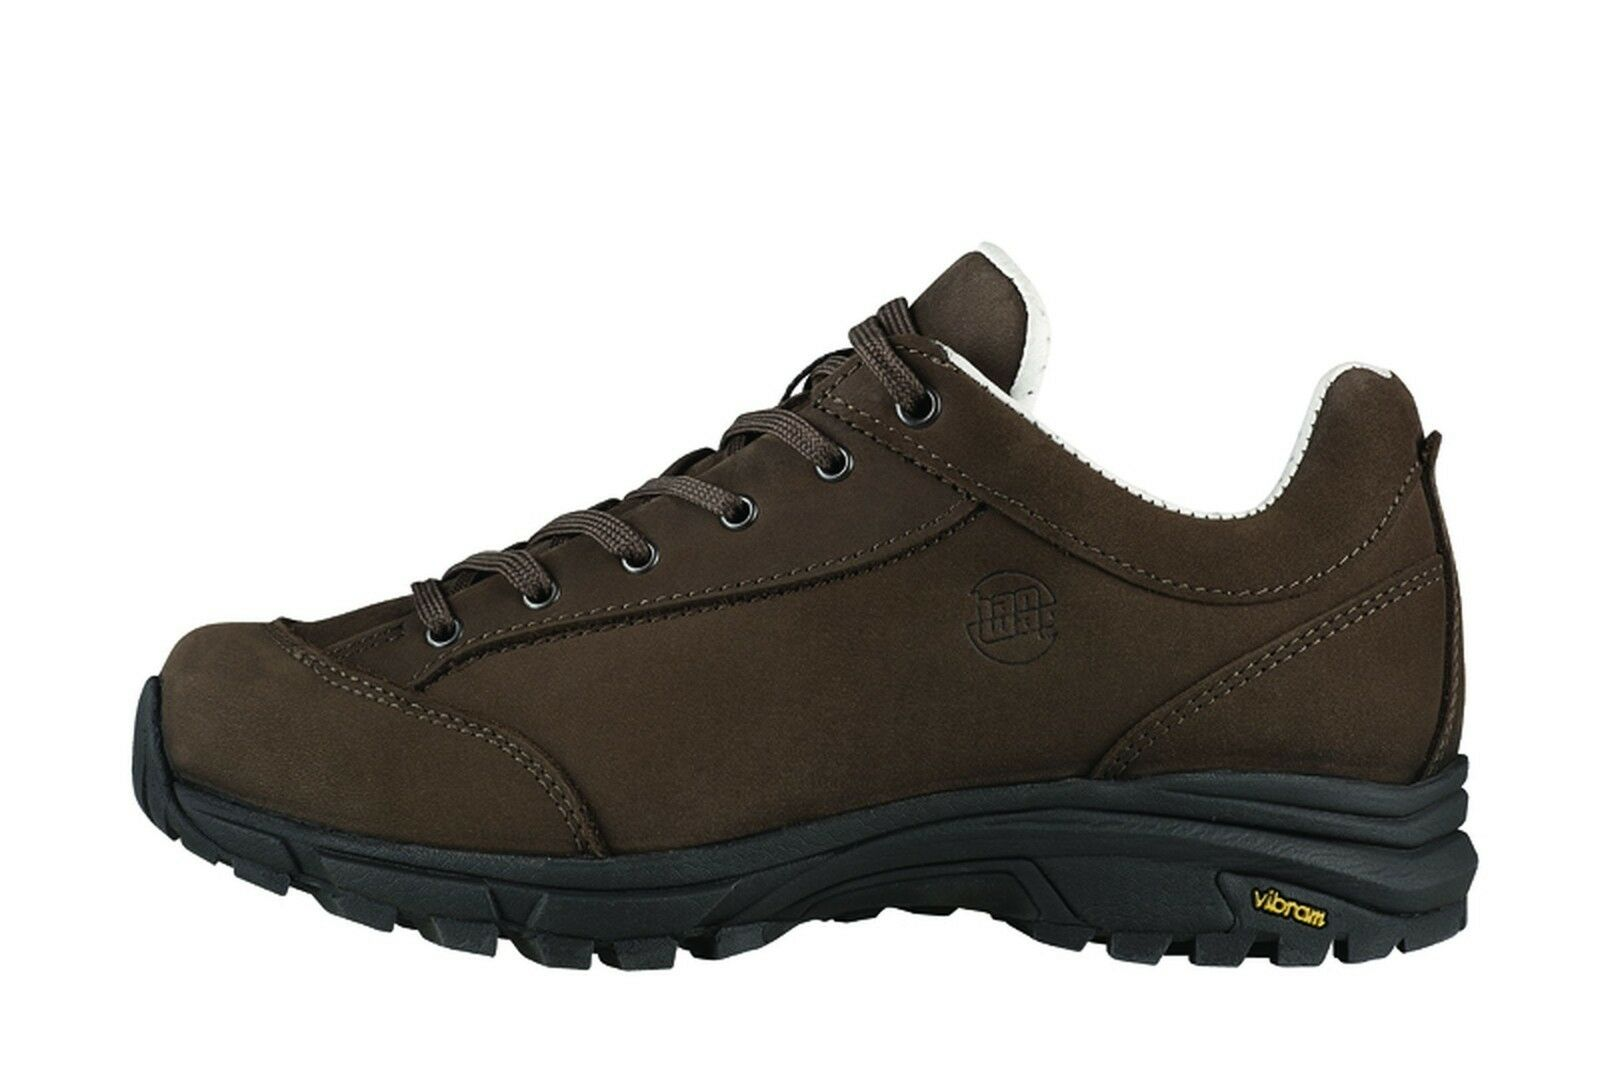 Hanwag Travel Travel Travel Travel  shoes Valungo Bunion Size 11 - 46 Earth  100% brand new with original quality